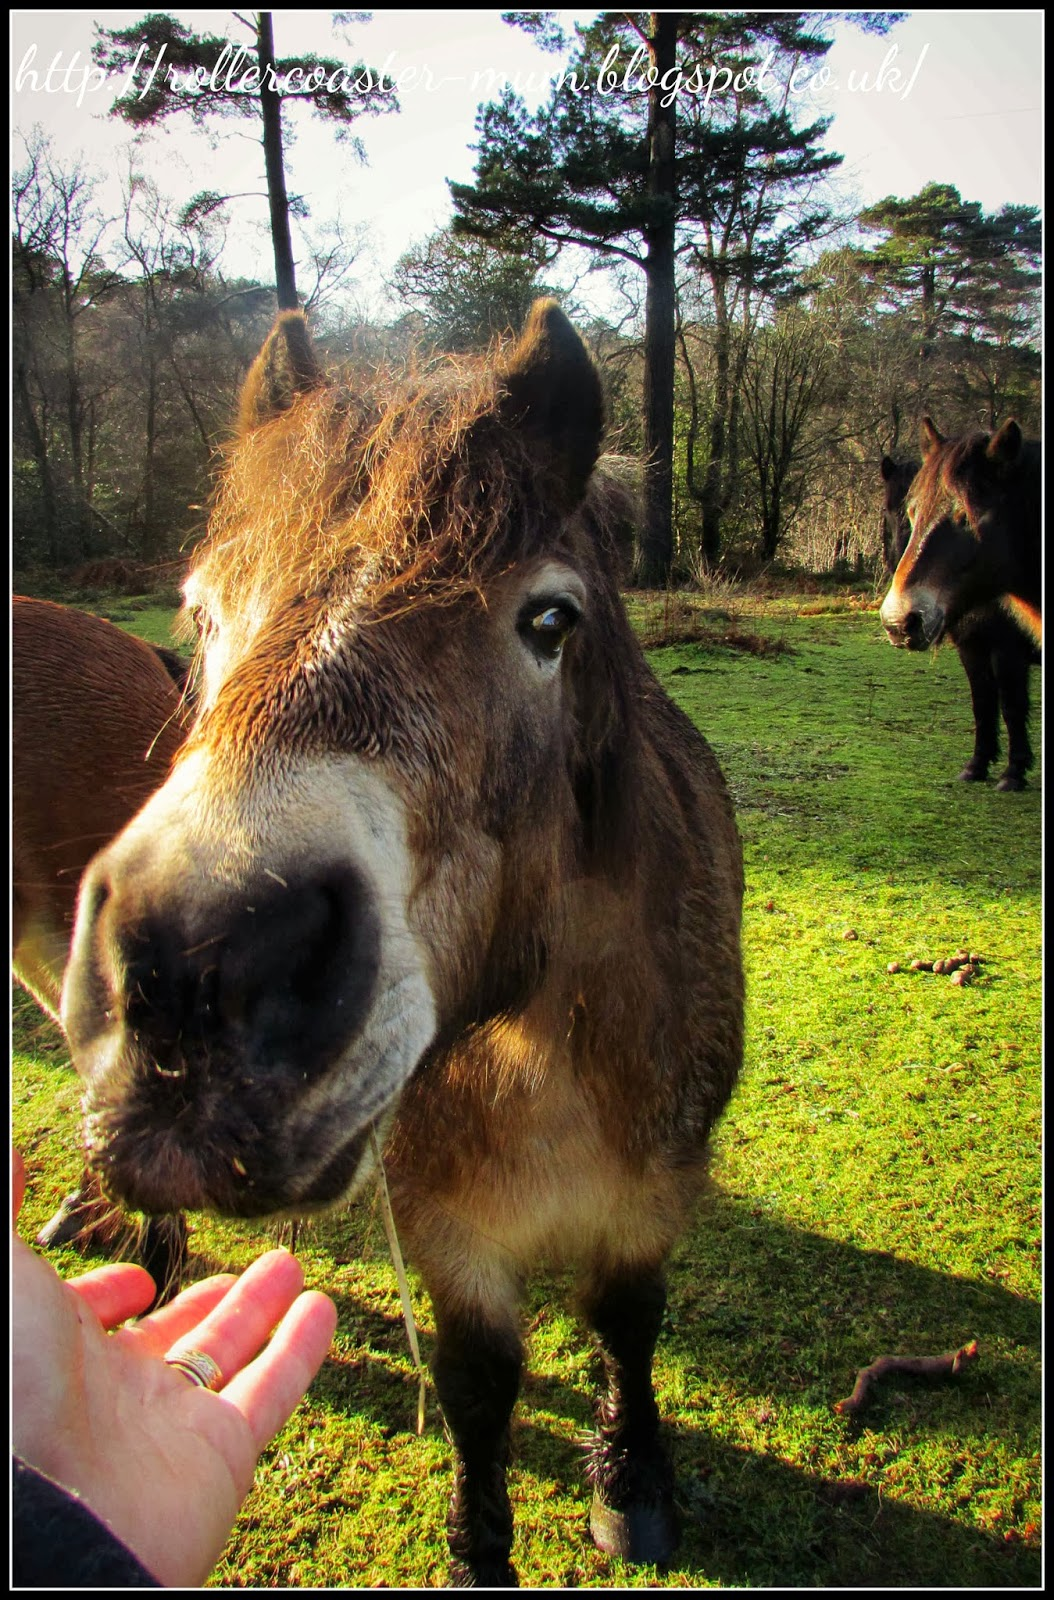 saying hello to a friendly Exmoor pony